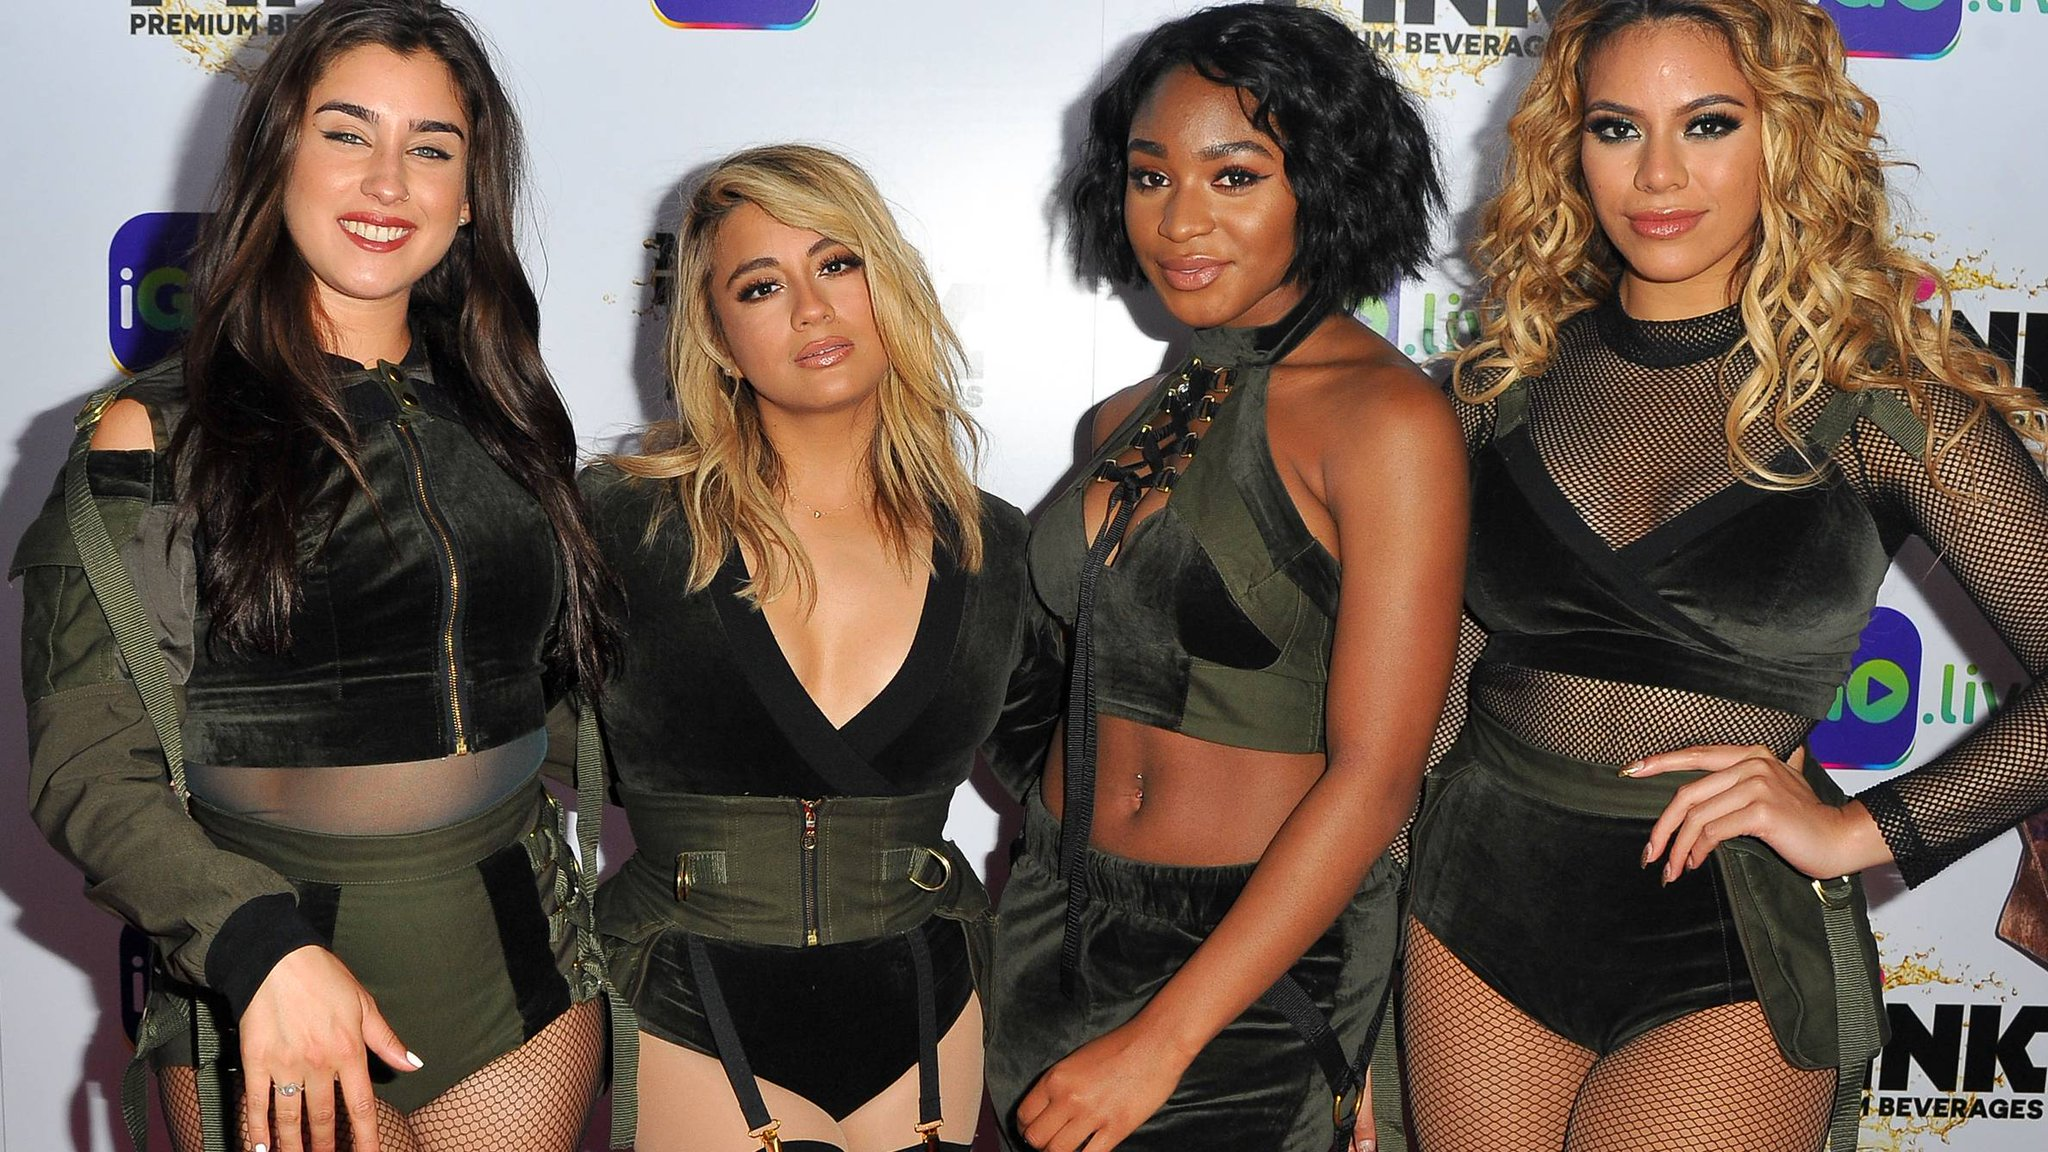 #VMA performers 5H get real about their struggles with self-confidence: https://t.co/LGsl0kOEVI https://t.co/moASE4mIeT